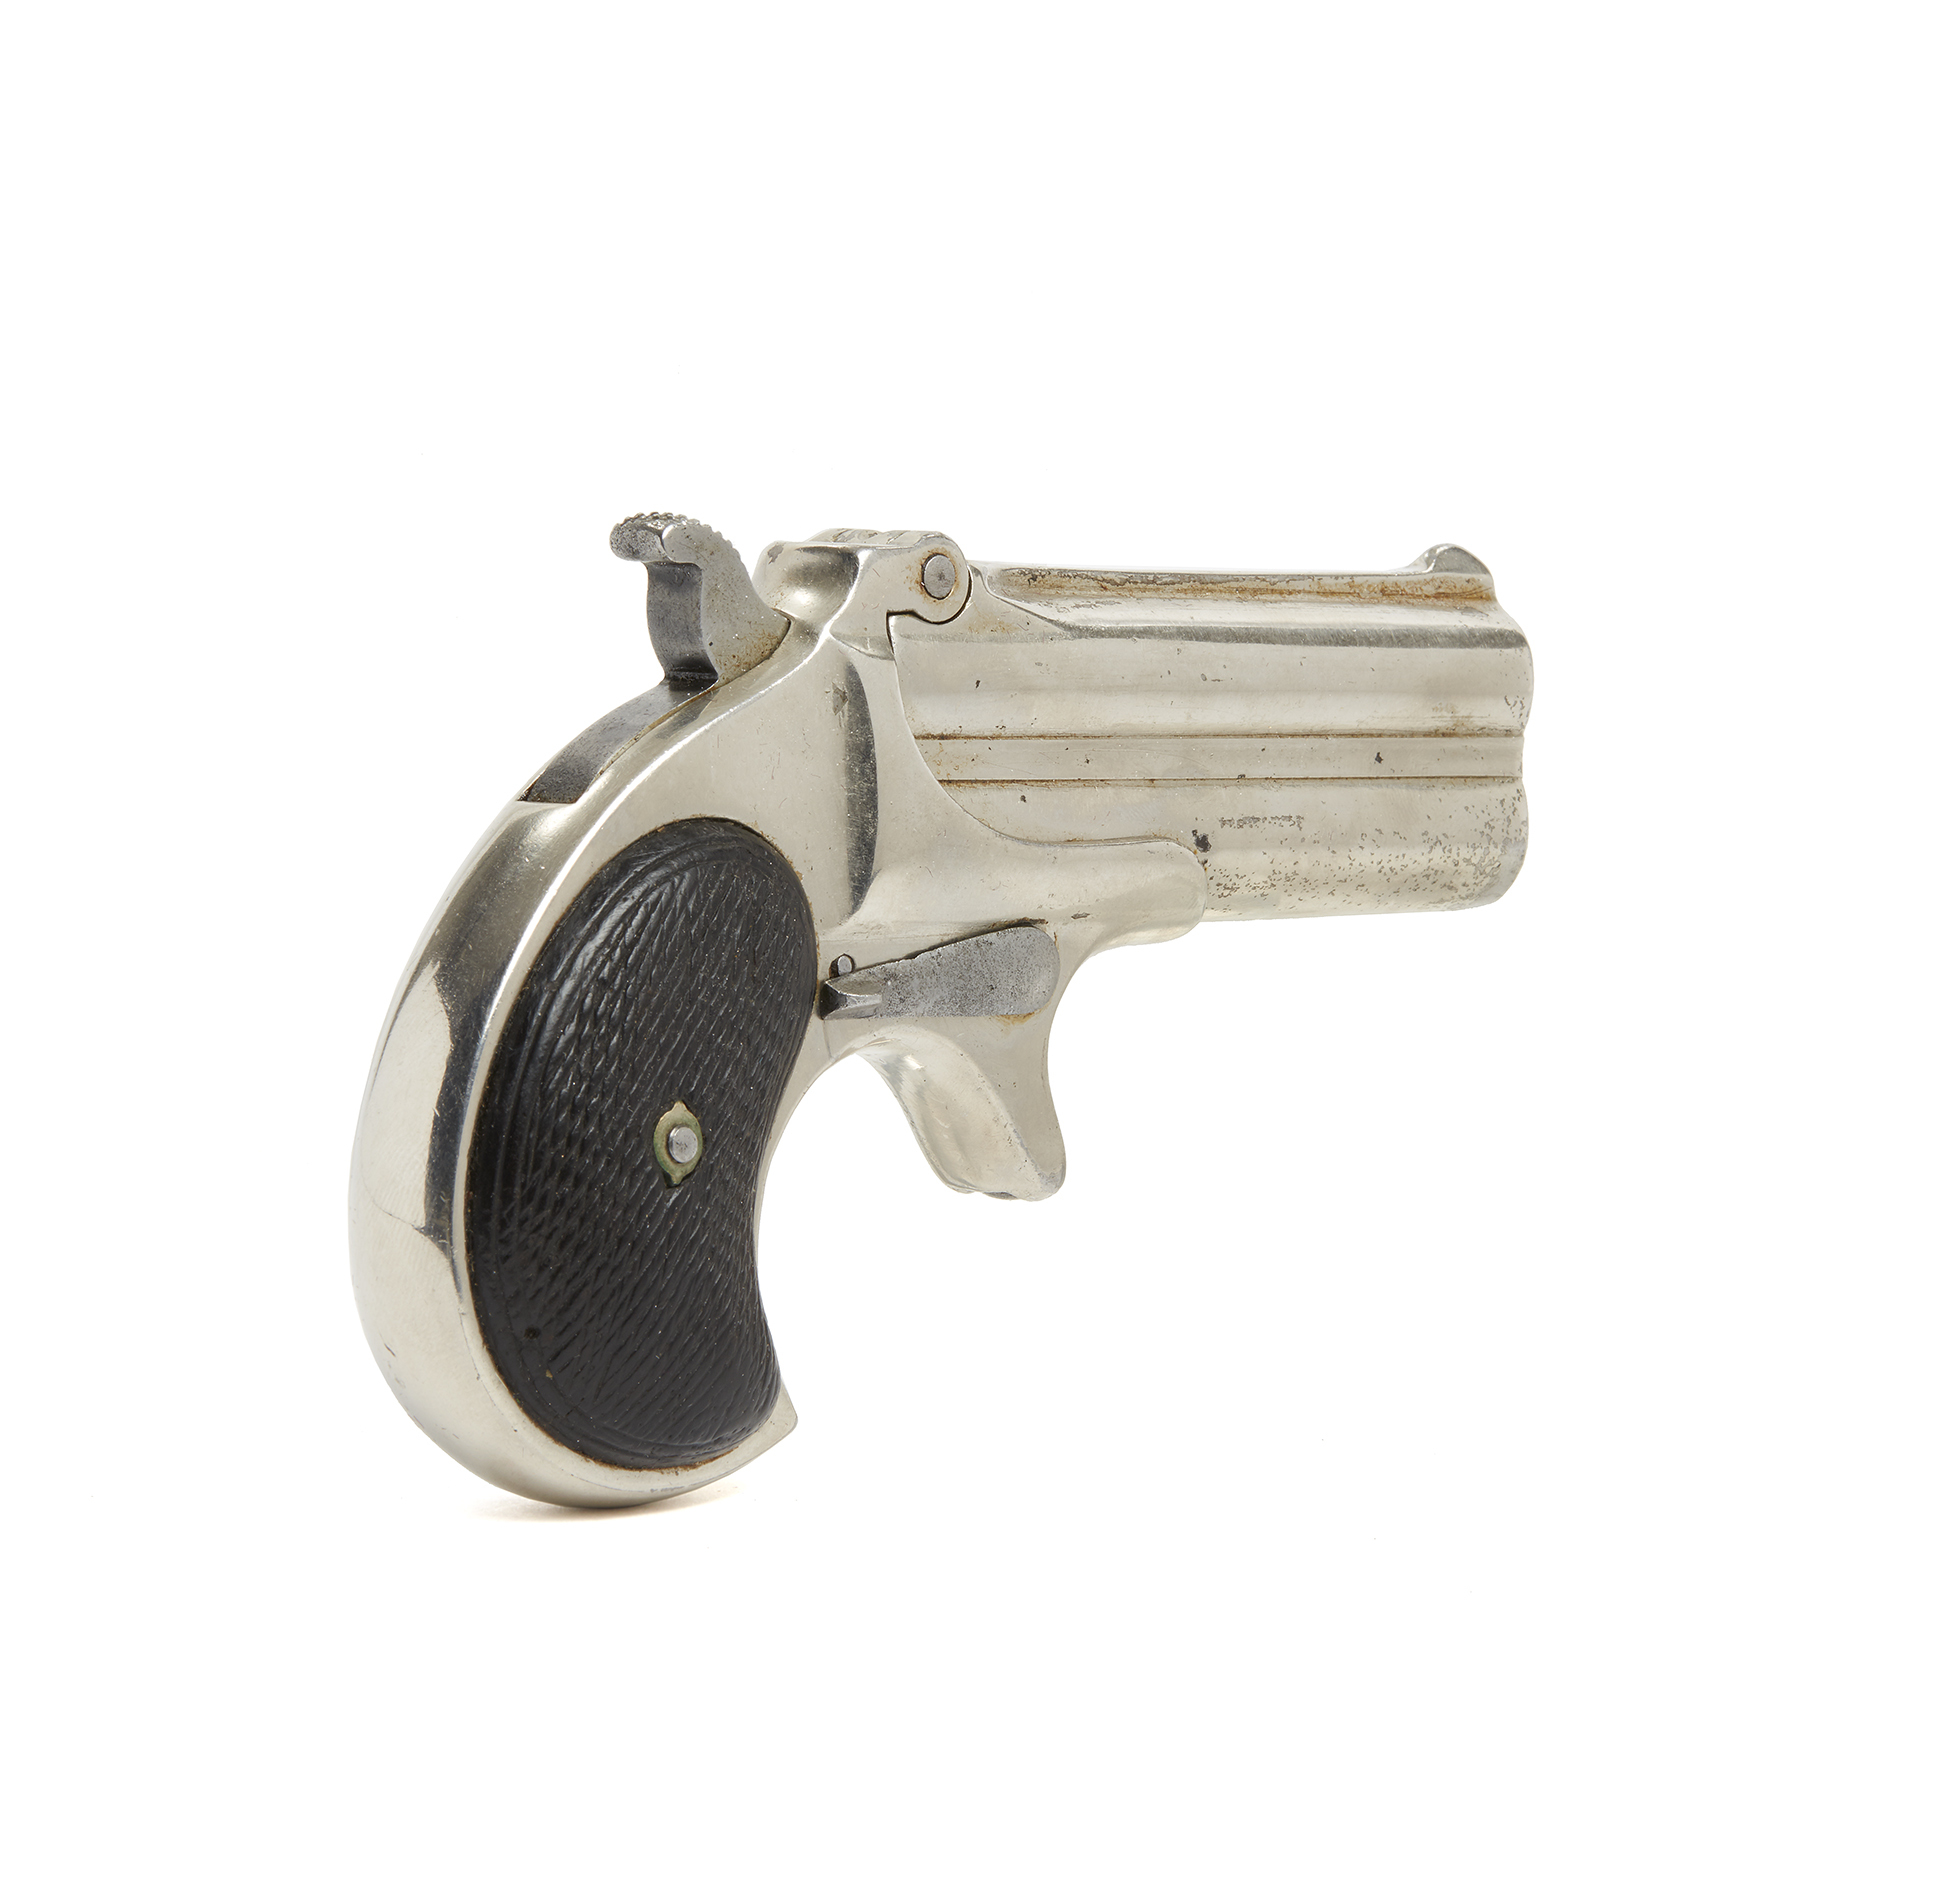 Remington Double Barrel Derringer   Witherell's Auction House